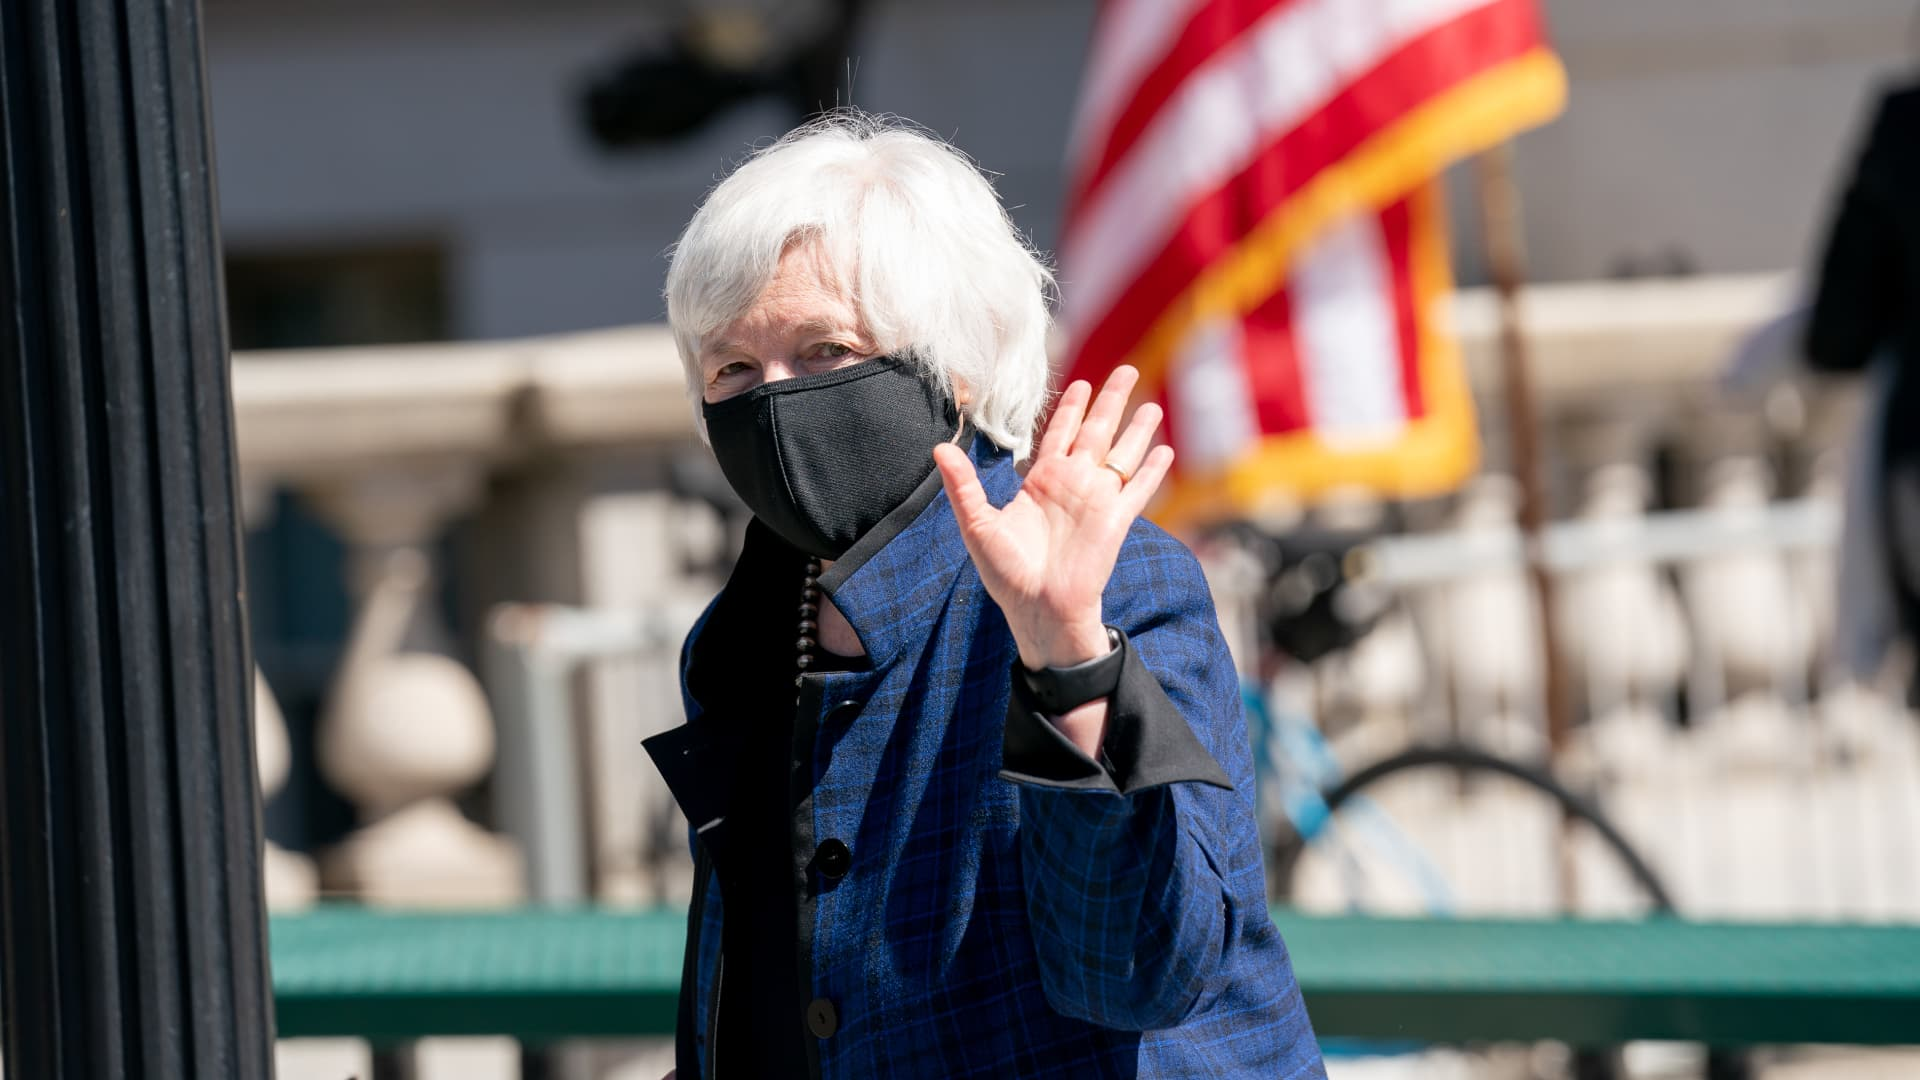 Janet Yellen, U.S. Treasury secretary, waves while exiting after swearing in Wally Adeyemo, deputy U.S. Treasury secretary, at the Treasury Department in Washington, D.C., on Friday, March 26, 2021.